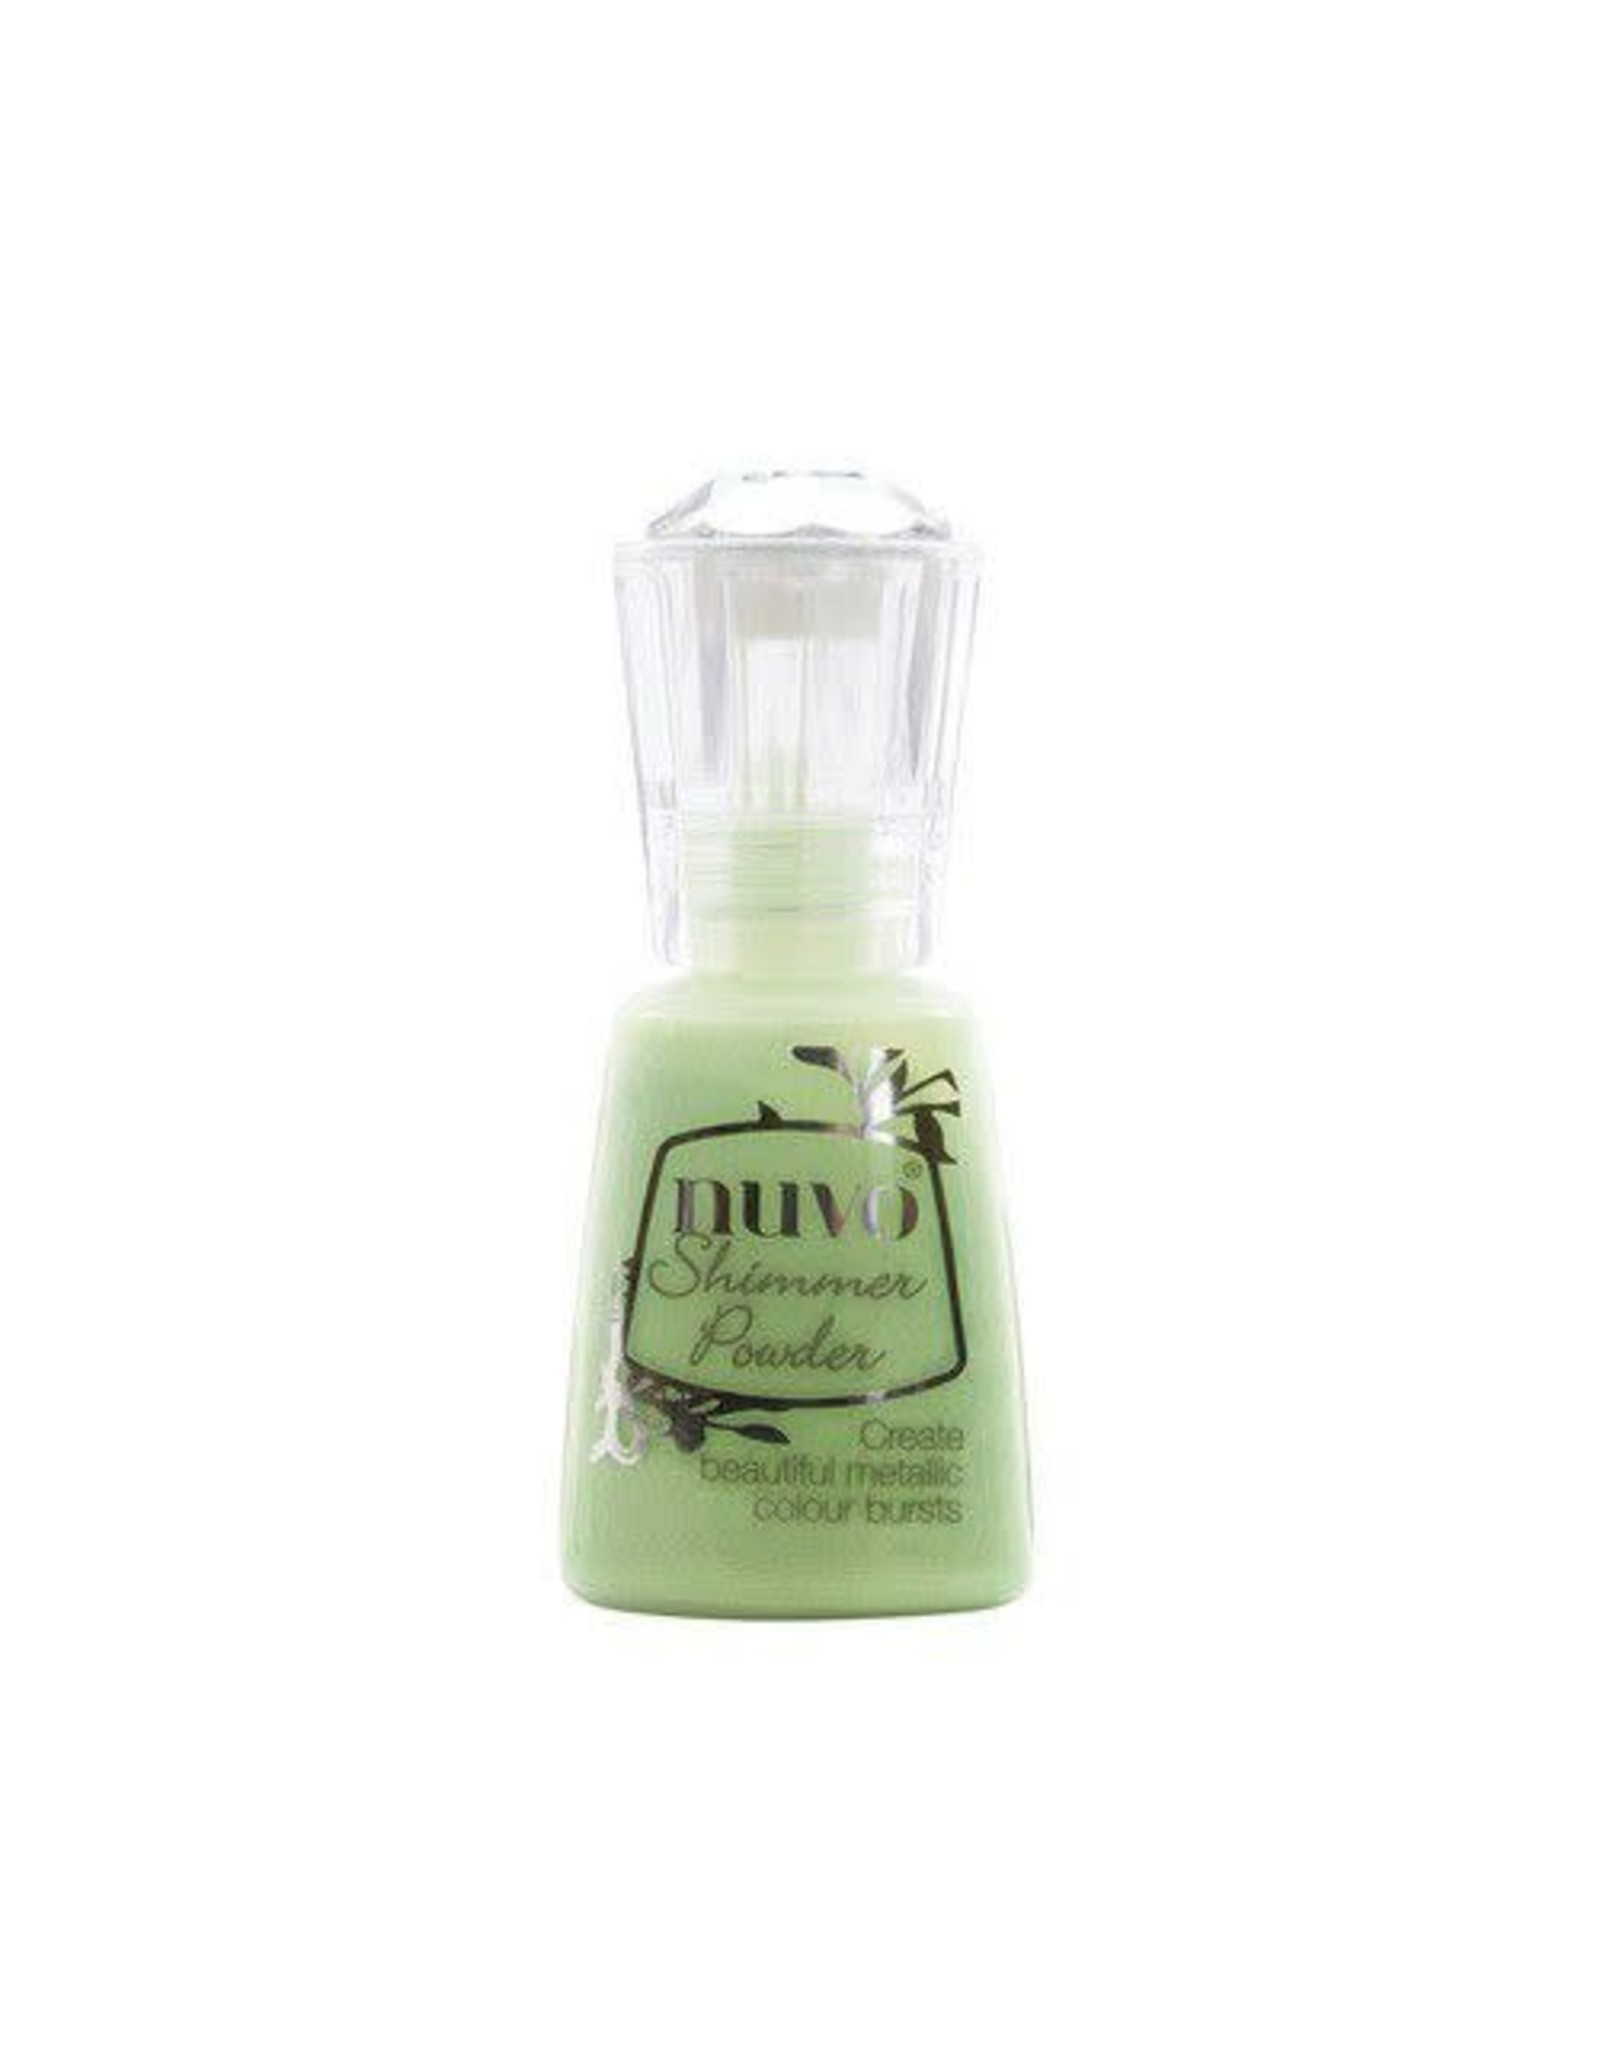 Nuvo by tonic Nuvo Shimmer powder - falling leaves 1217N